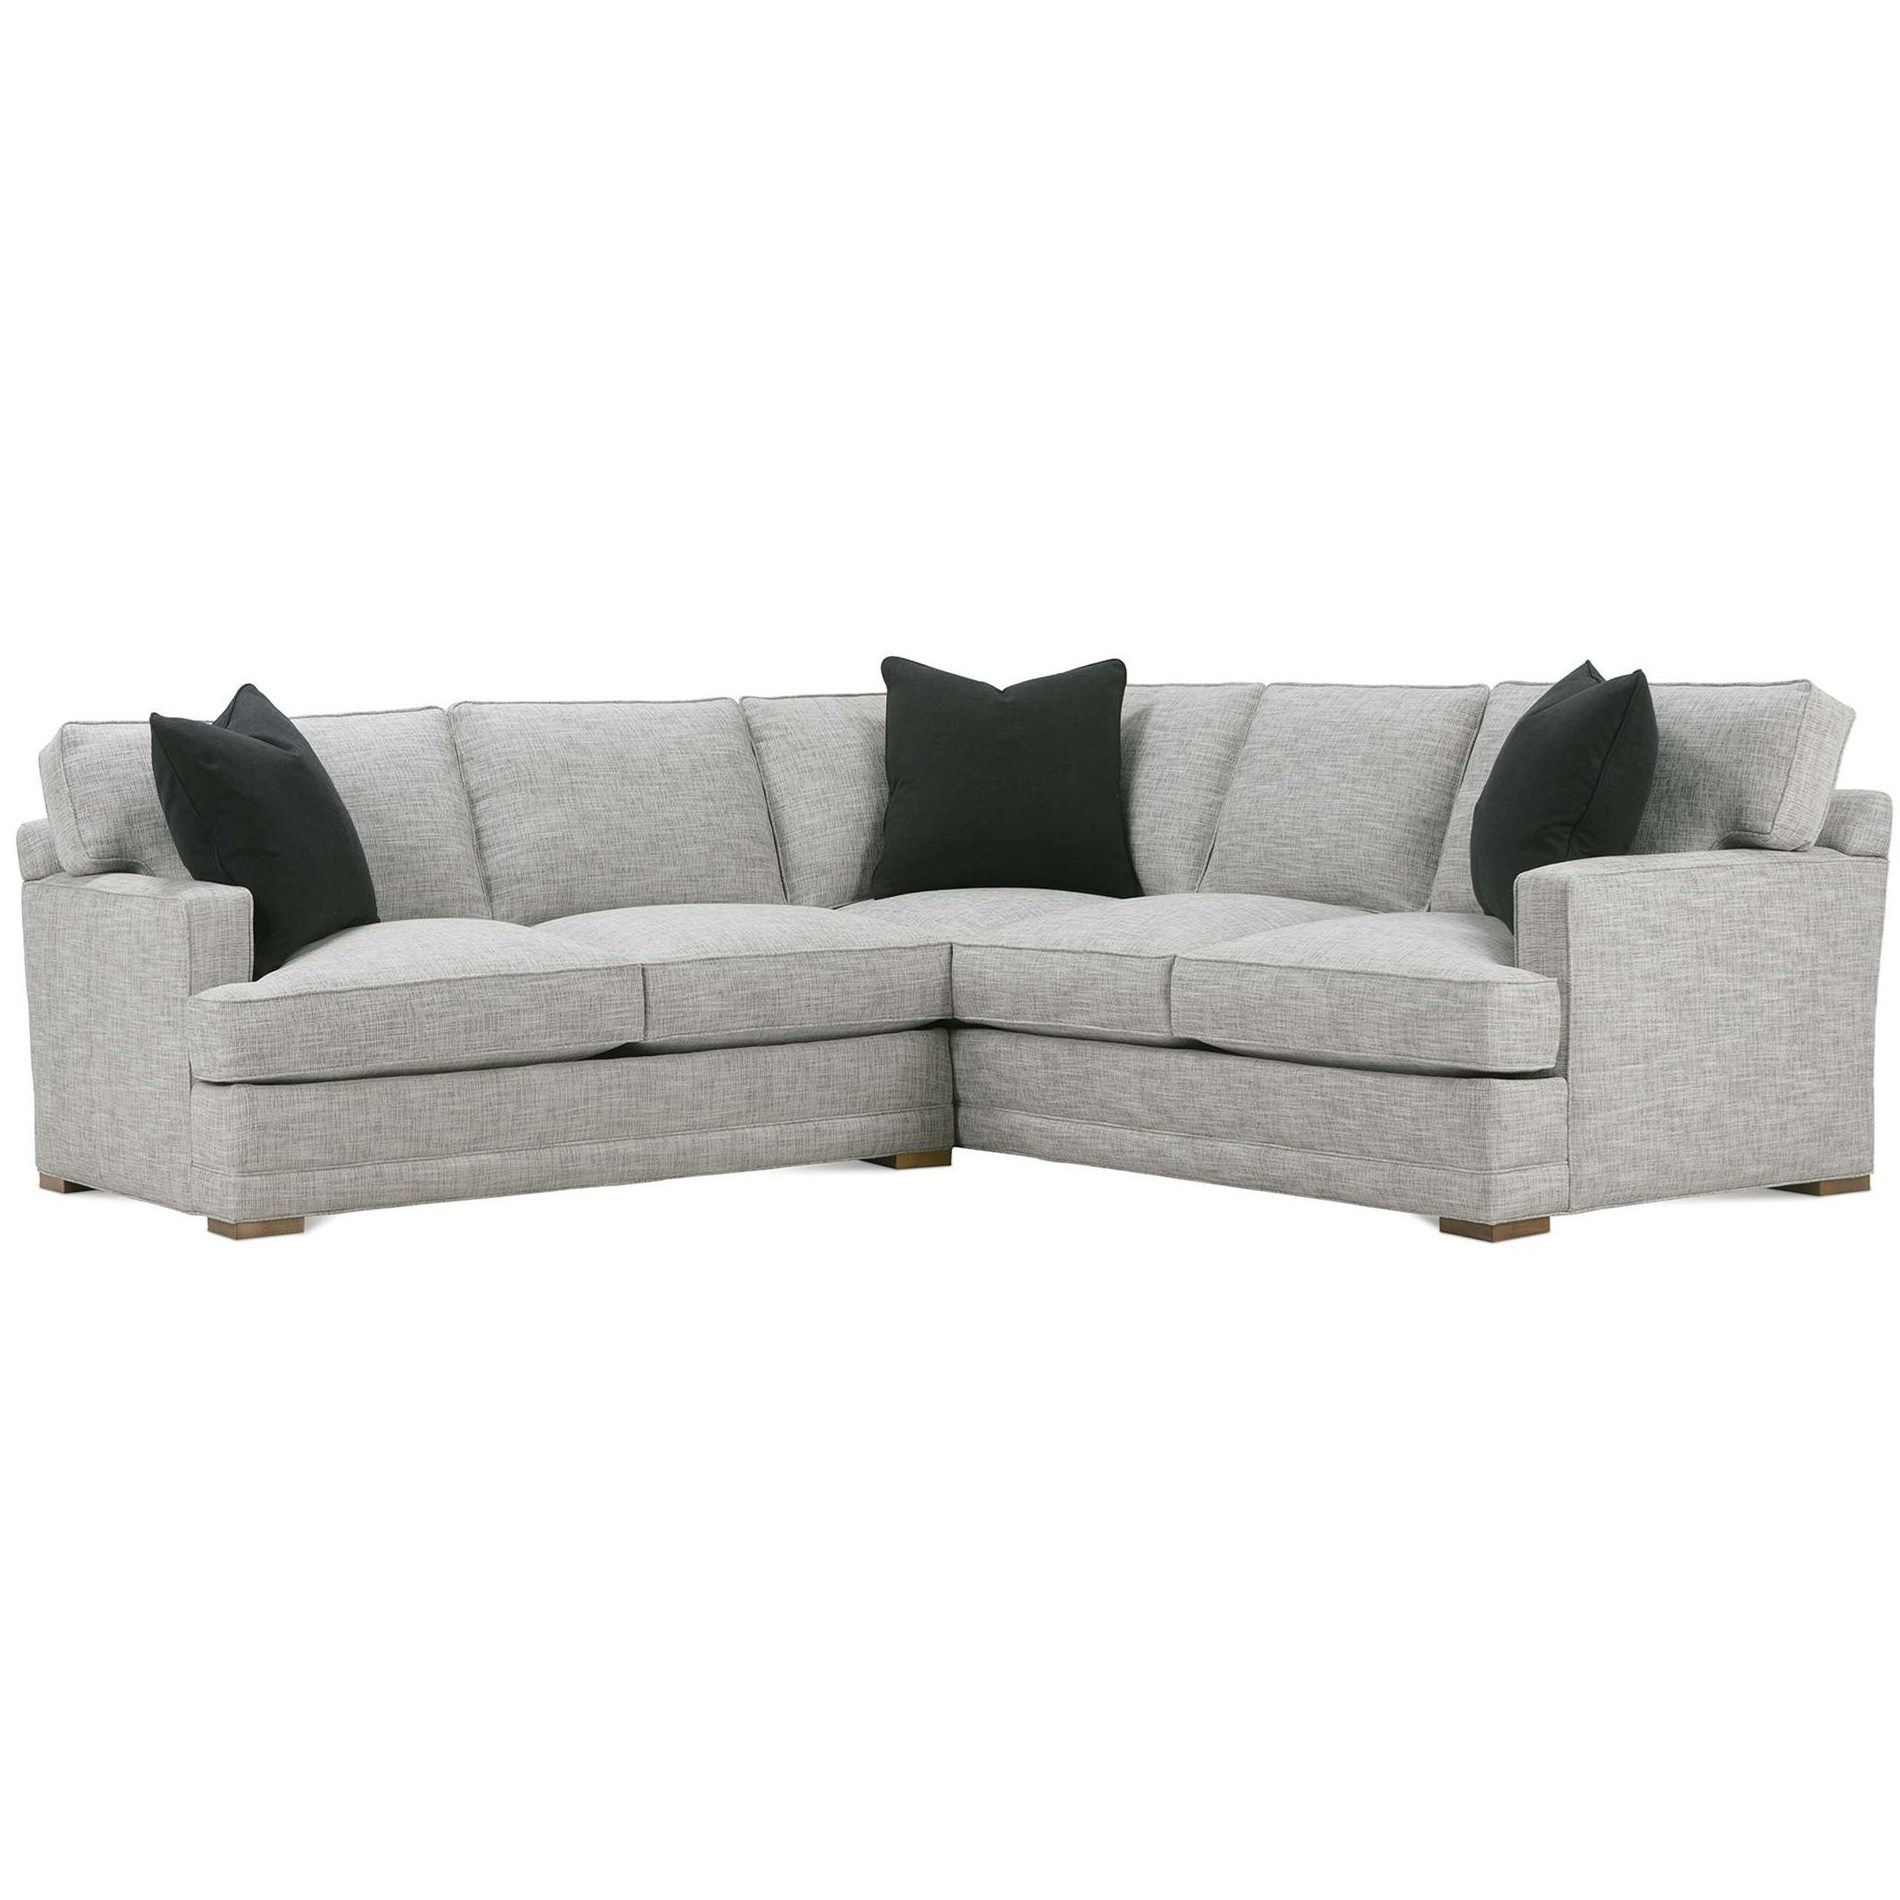 Grayson 2-Piece Sectional with RSE Corner Sofa by Rowe at Baer's Furniture